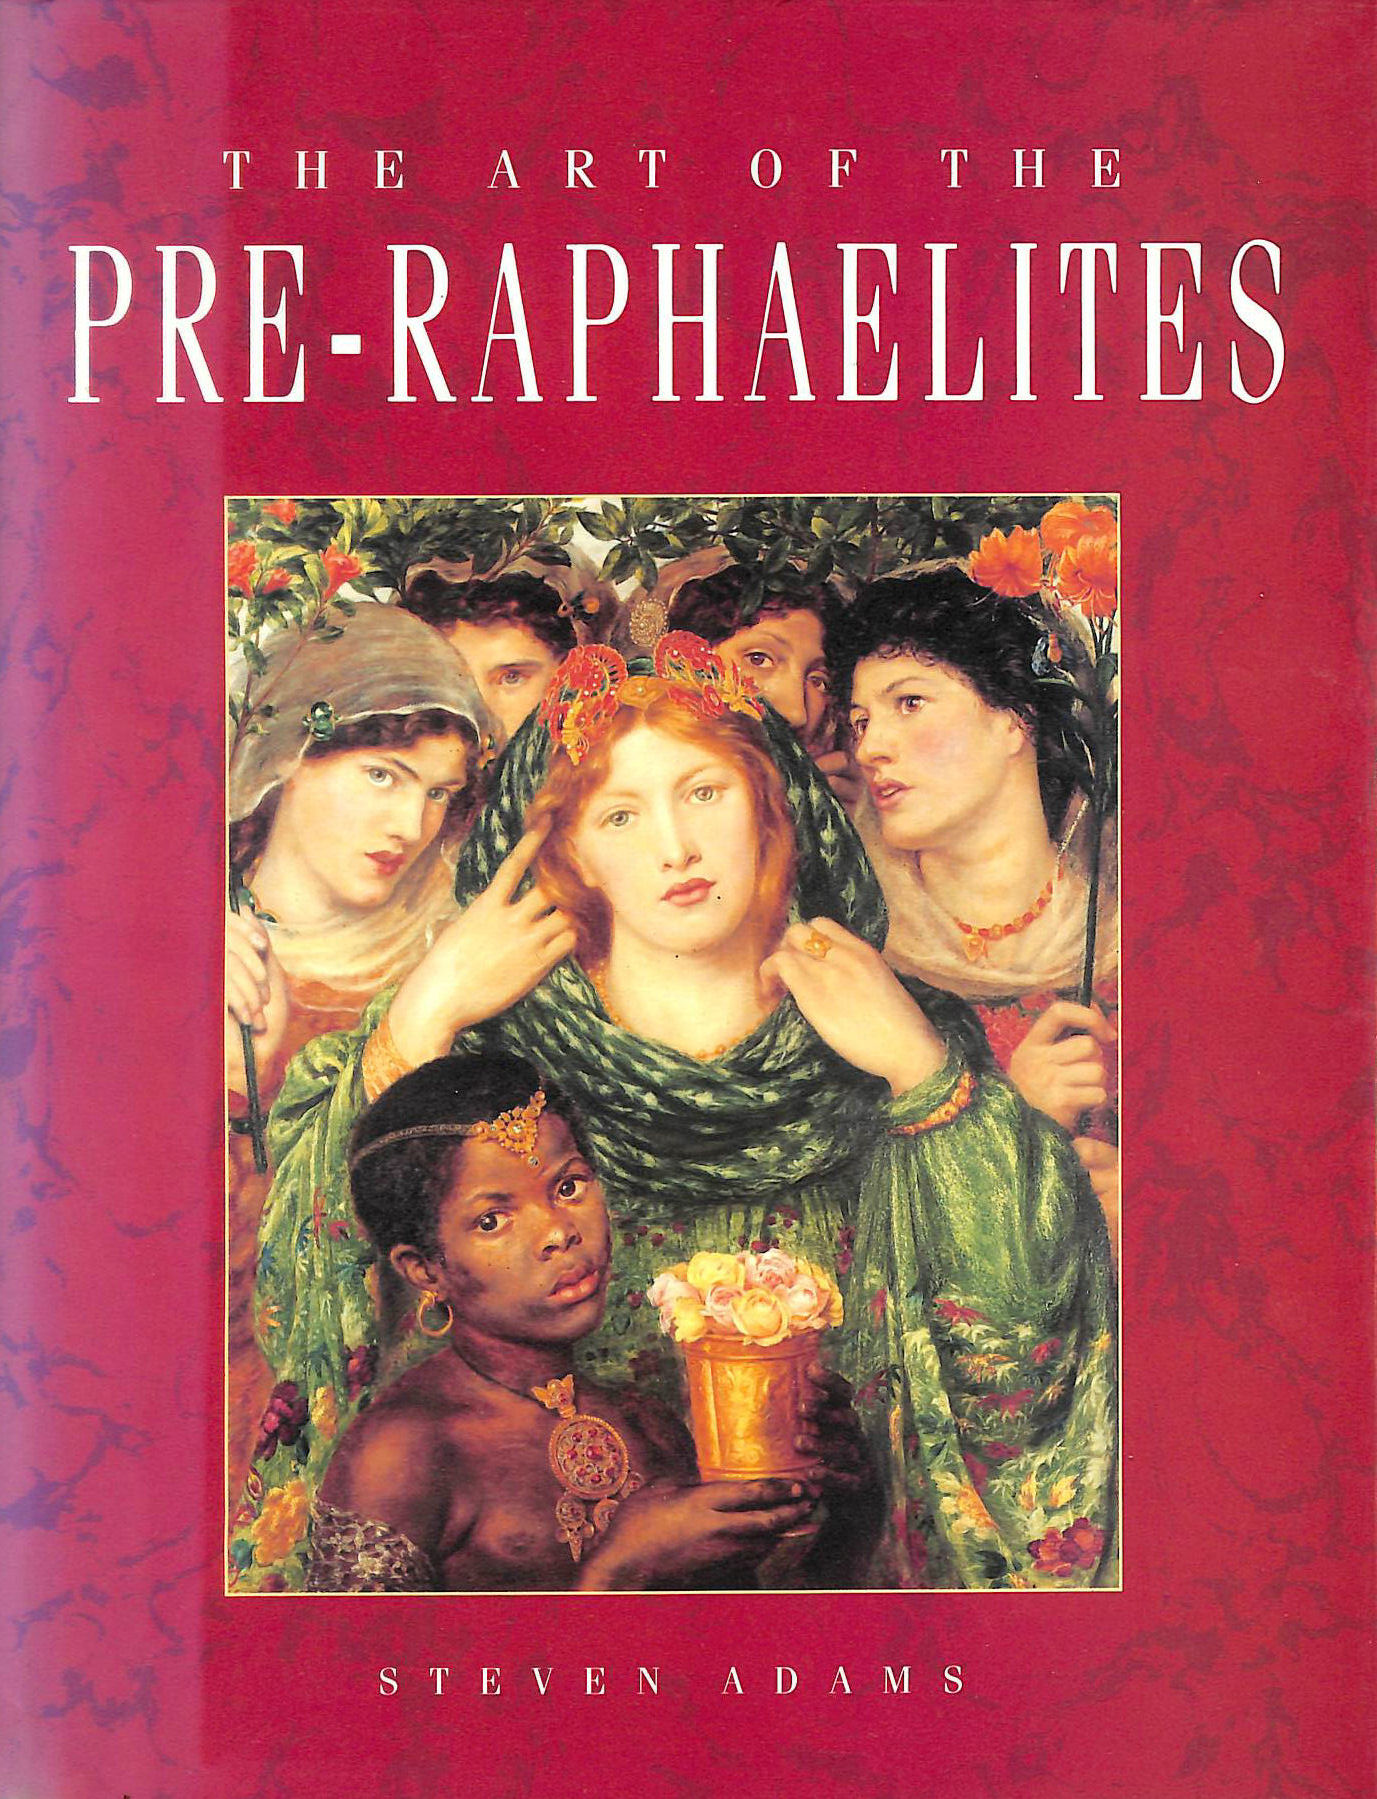 Image for THE ART OF THE PRE-RAPHAELITES.